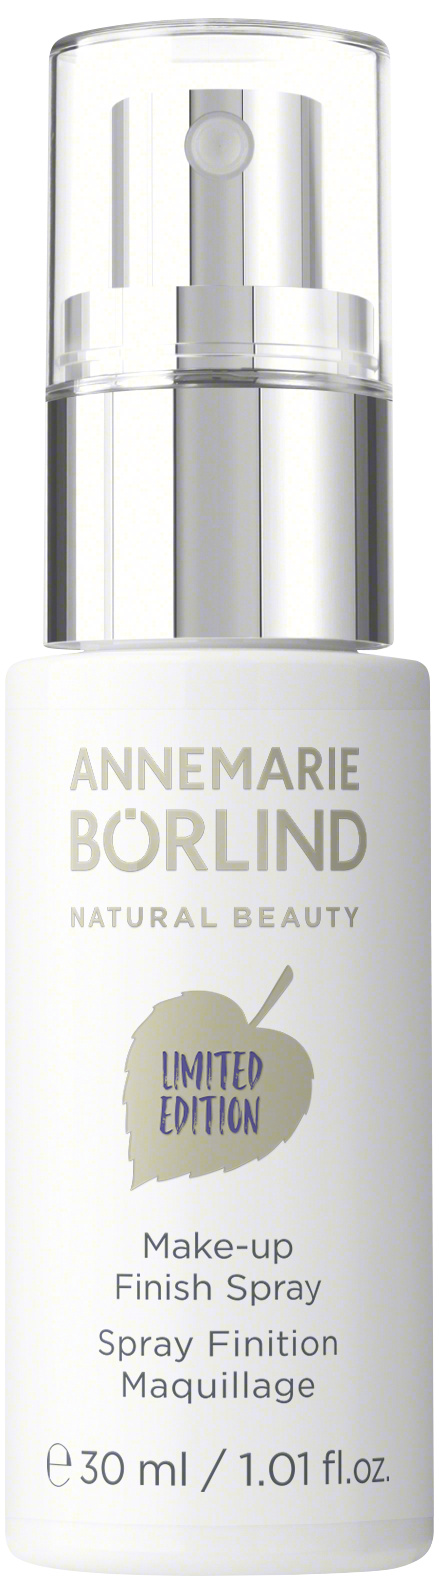 Annemarie Börlind: Make-up Finish Spray Limited Edition